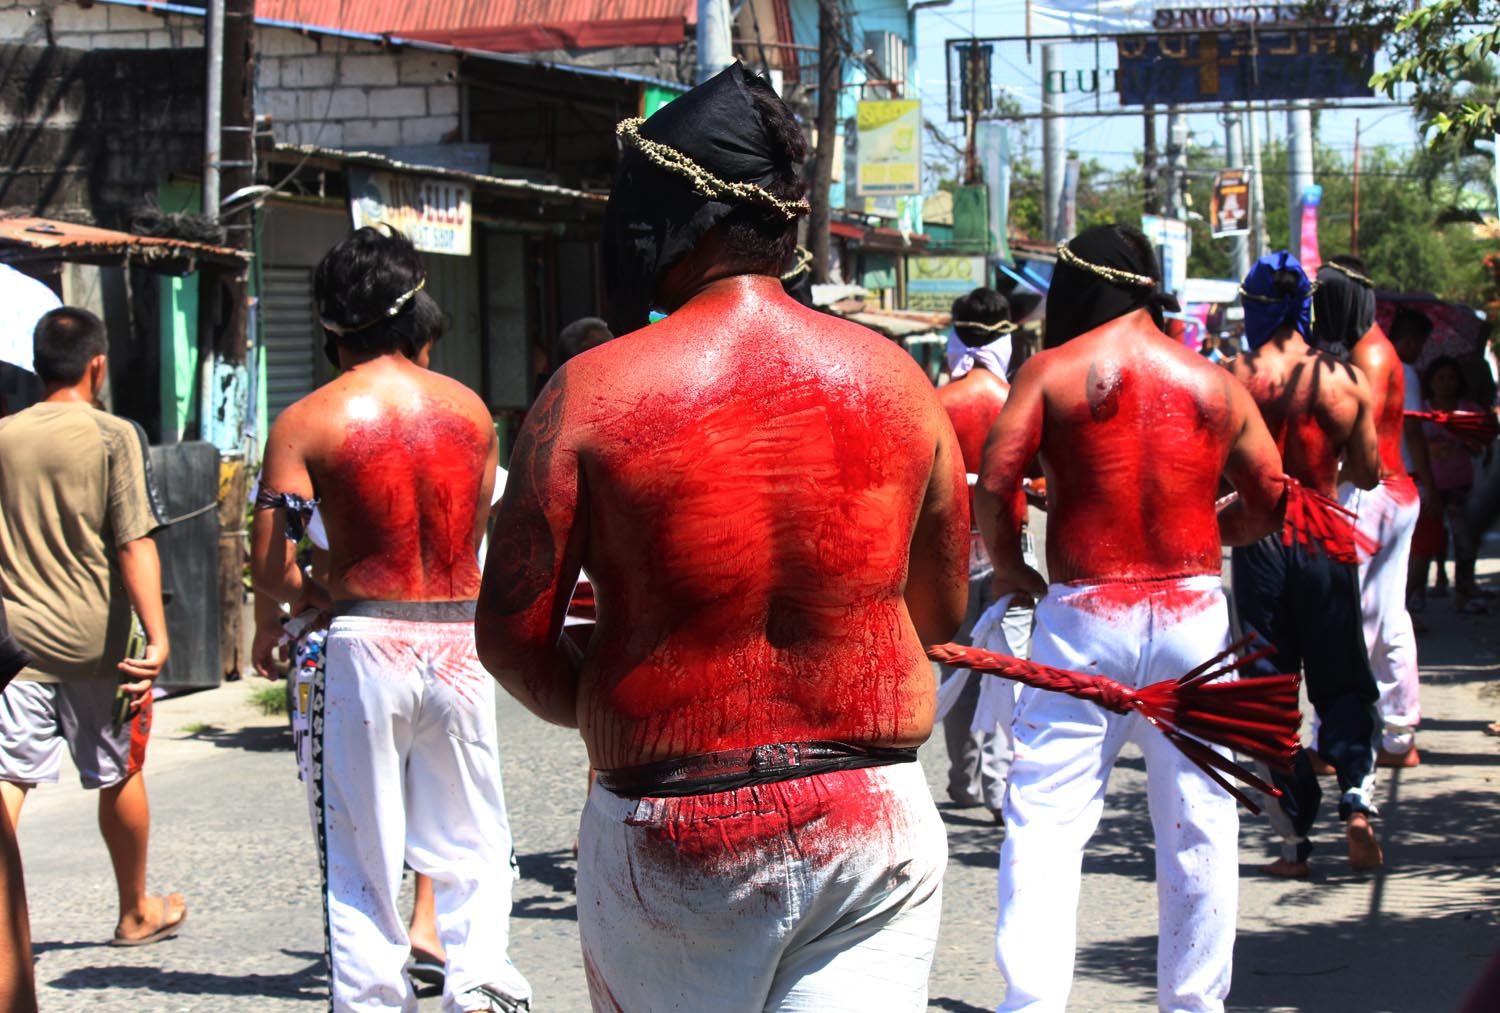 ATONEMENT. Devotees whips their body during a Good Friday ritual to atone for their sins. Photo by Darren Langit